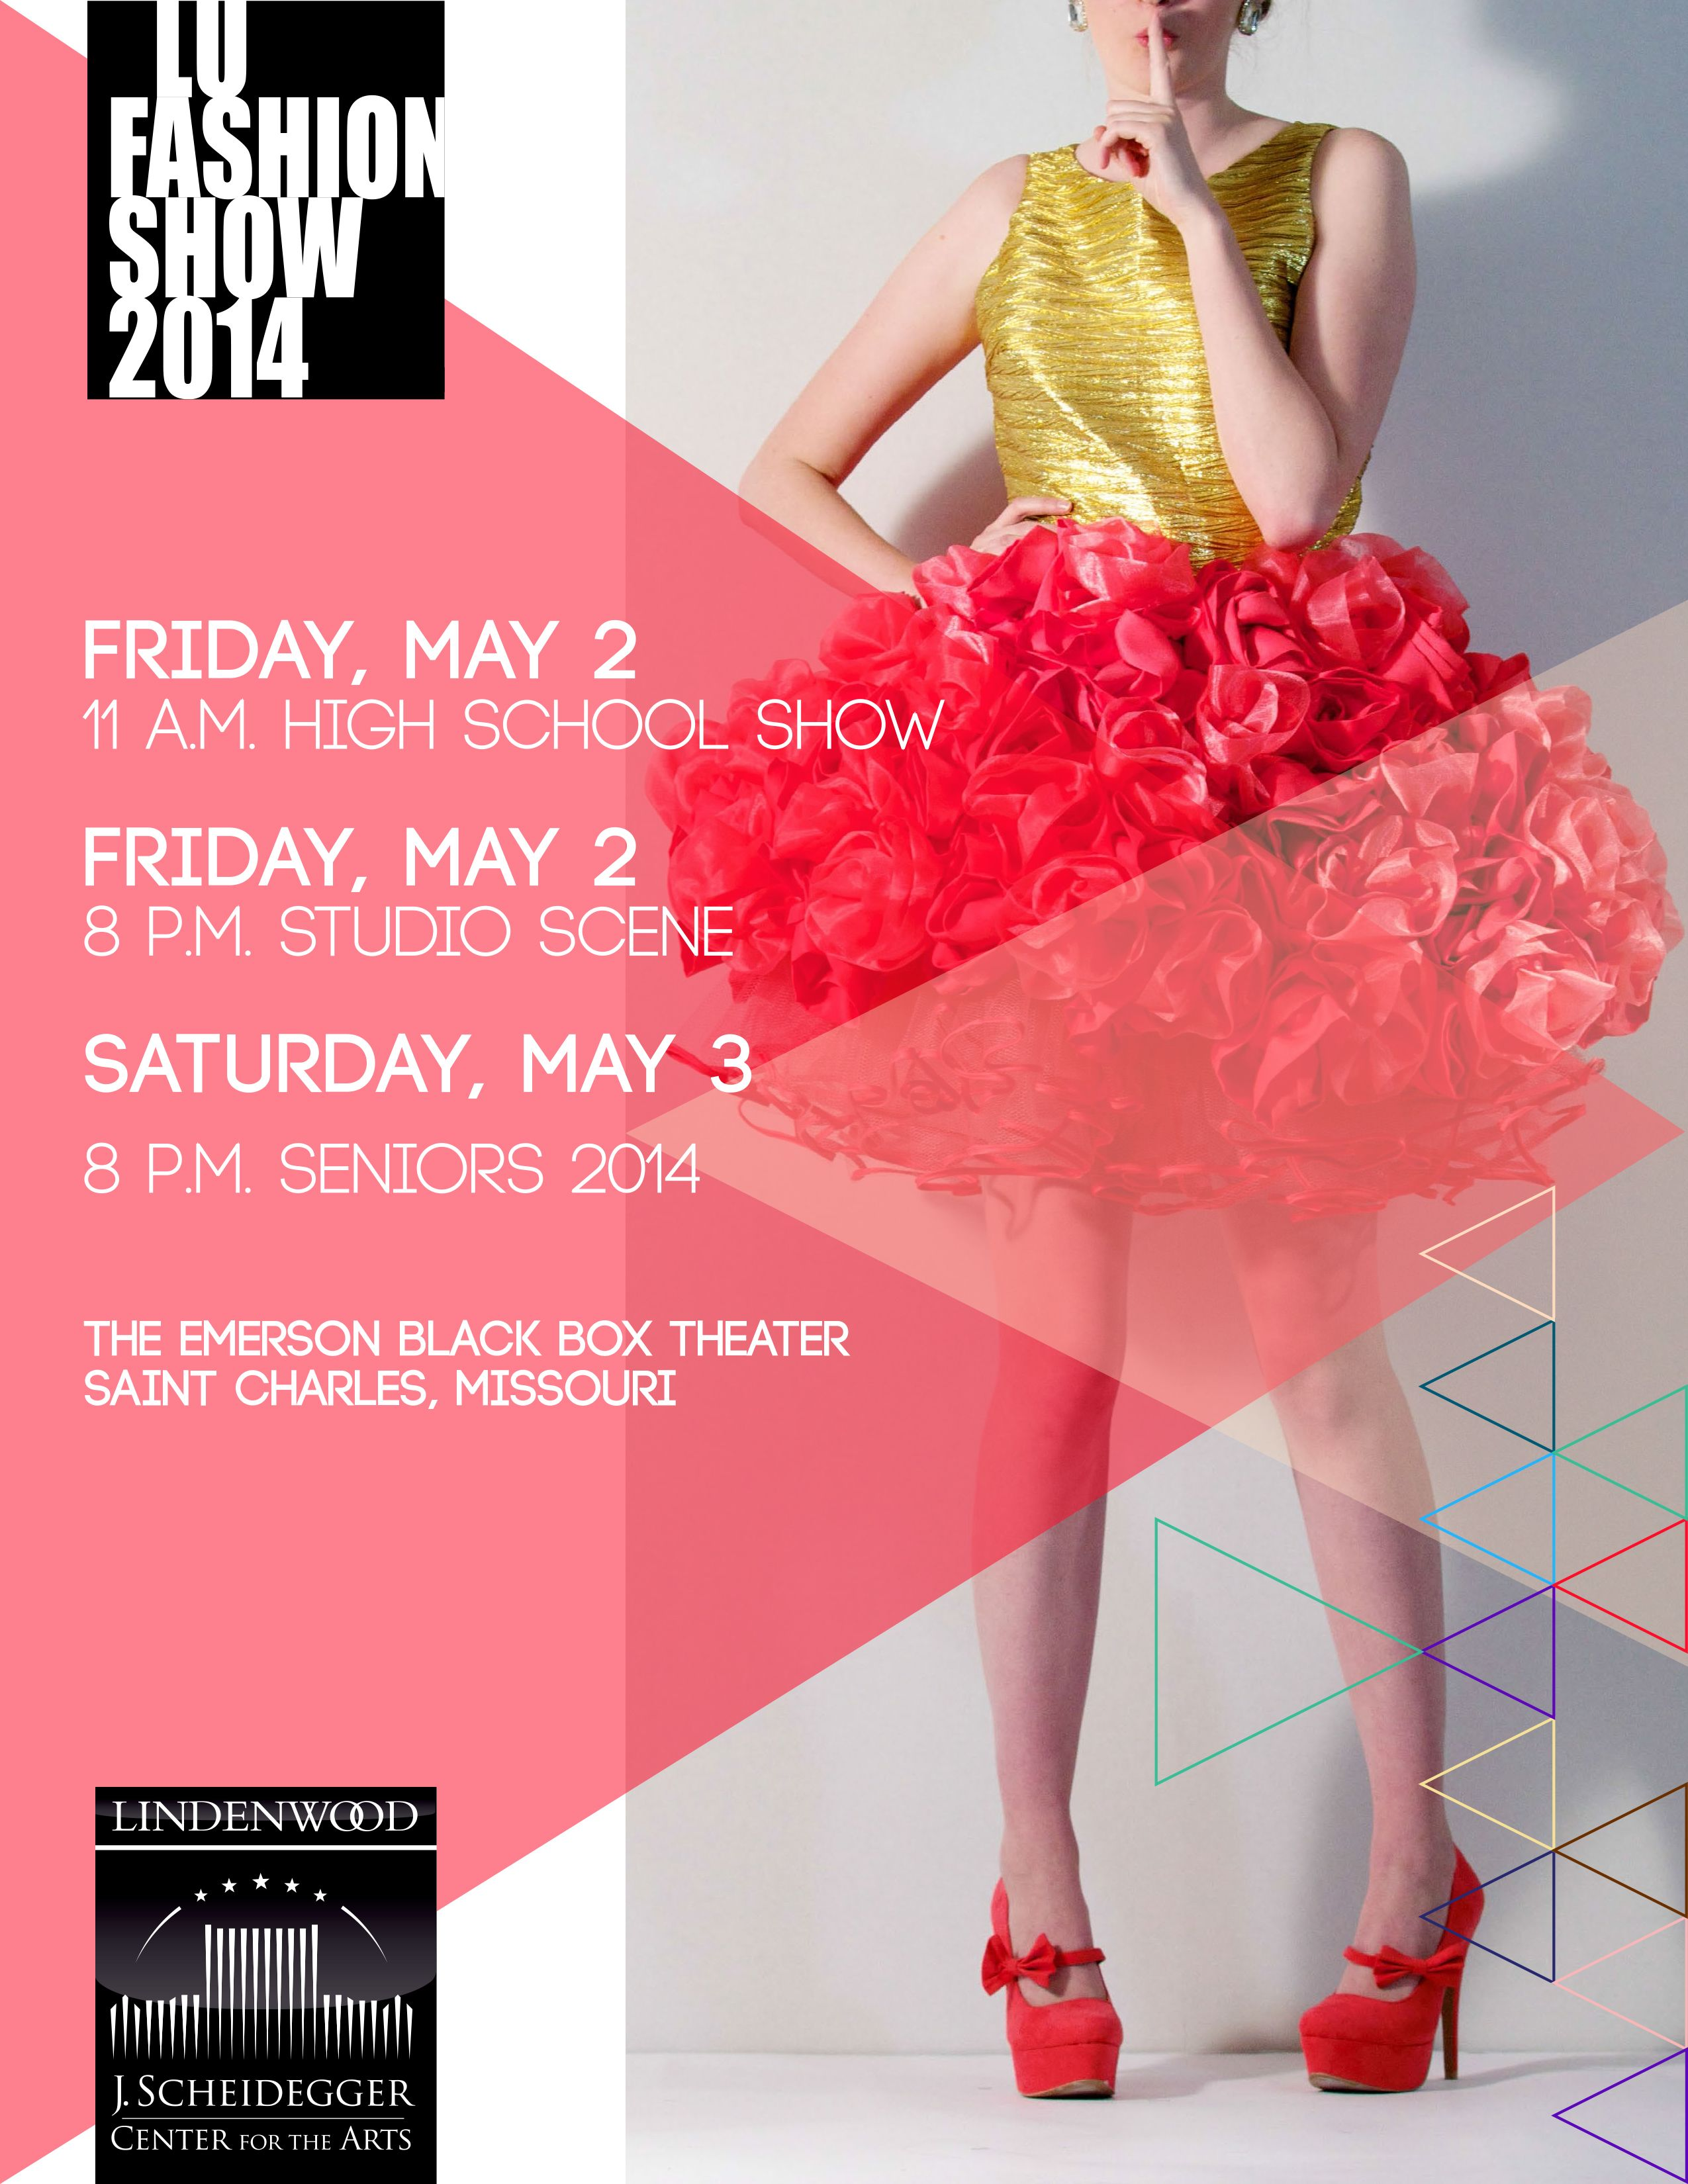 Fashion Show Flyer | Flyers, Flyer template and Fashion show